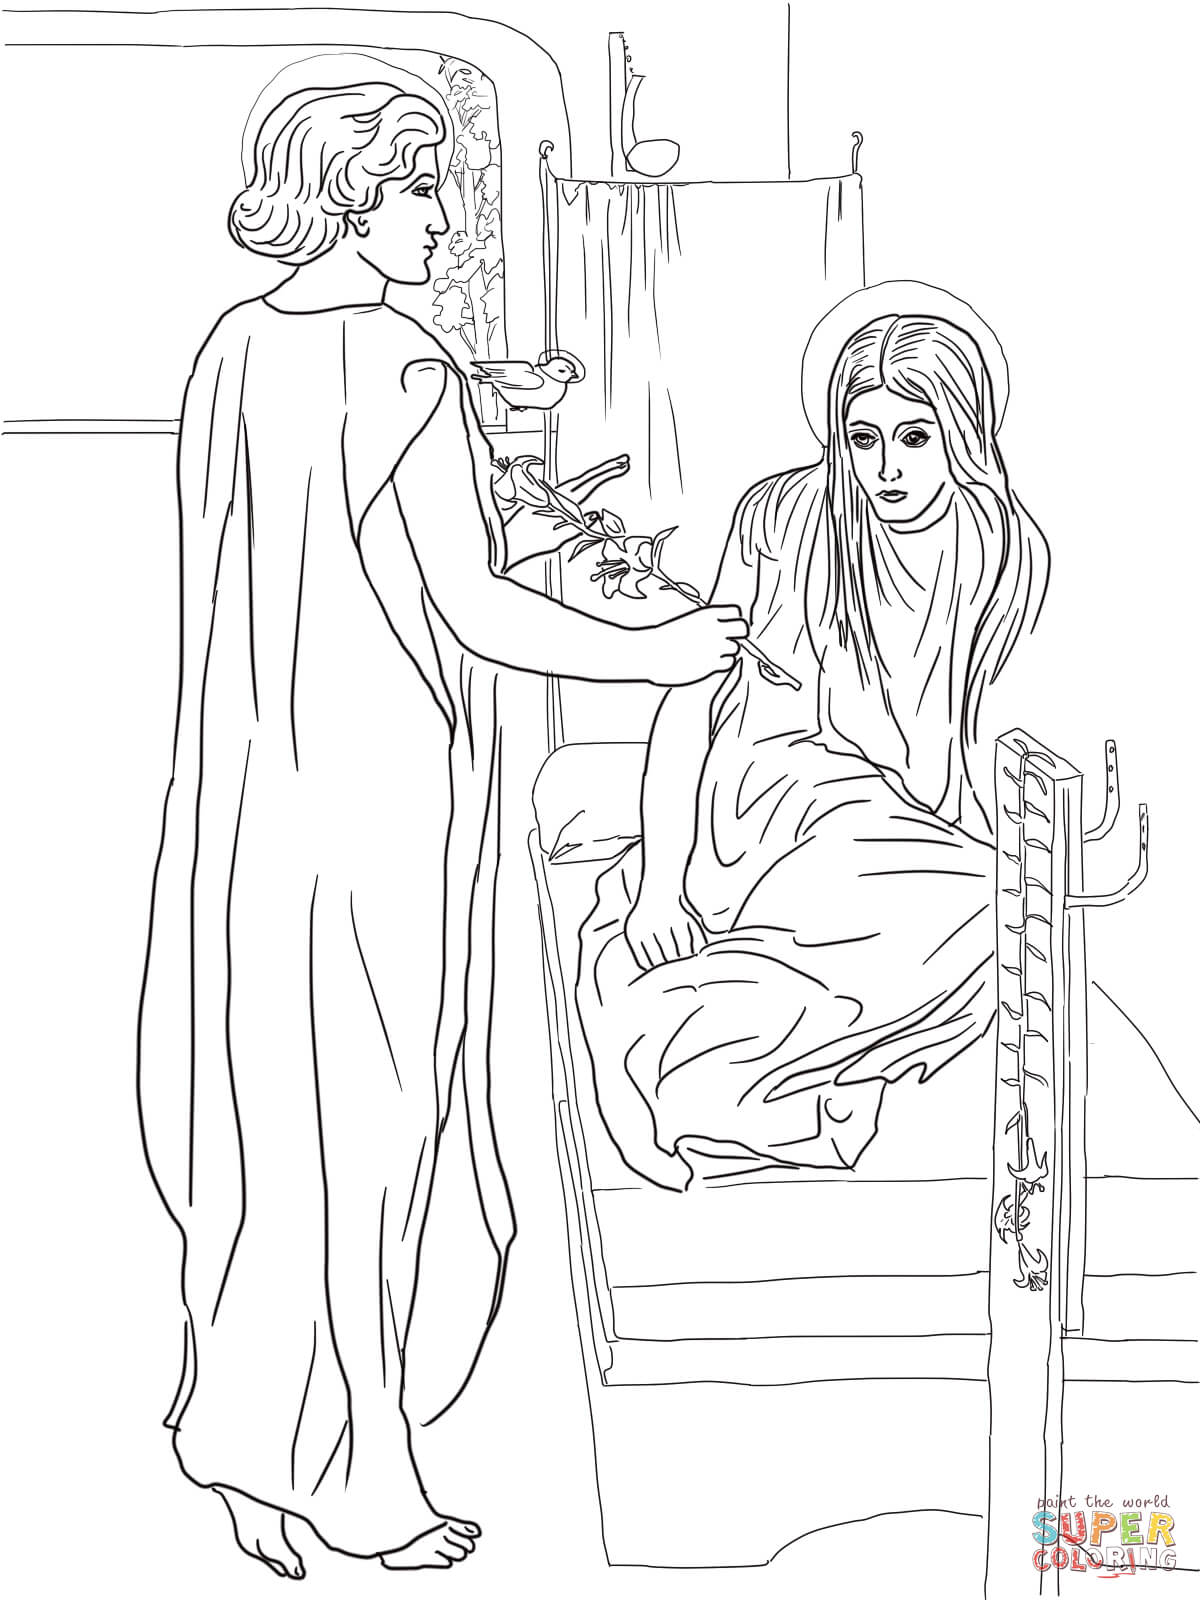 angel gabriel visits mary coloring free printable home di6aazb4t leaf man lesson plan coloring pages Angel Visits Mary Coloring Page